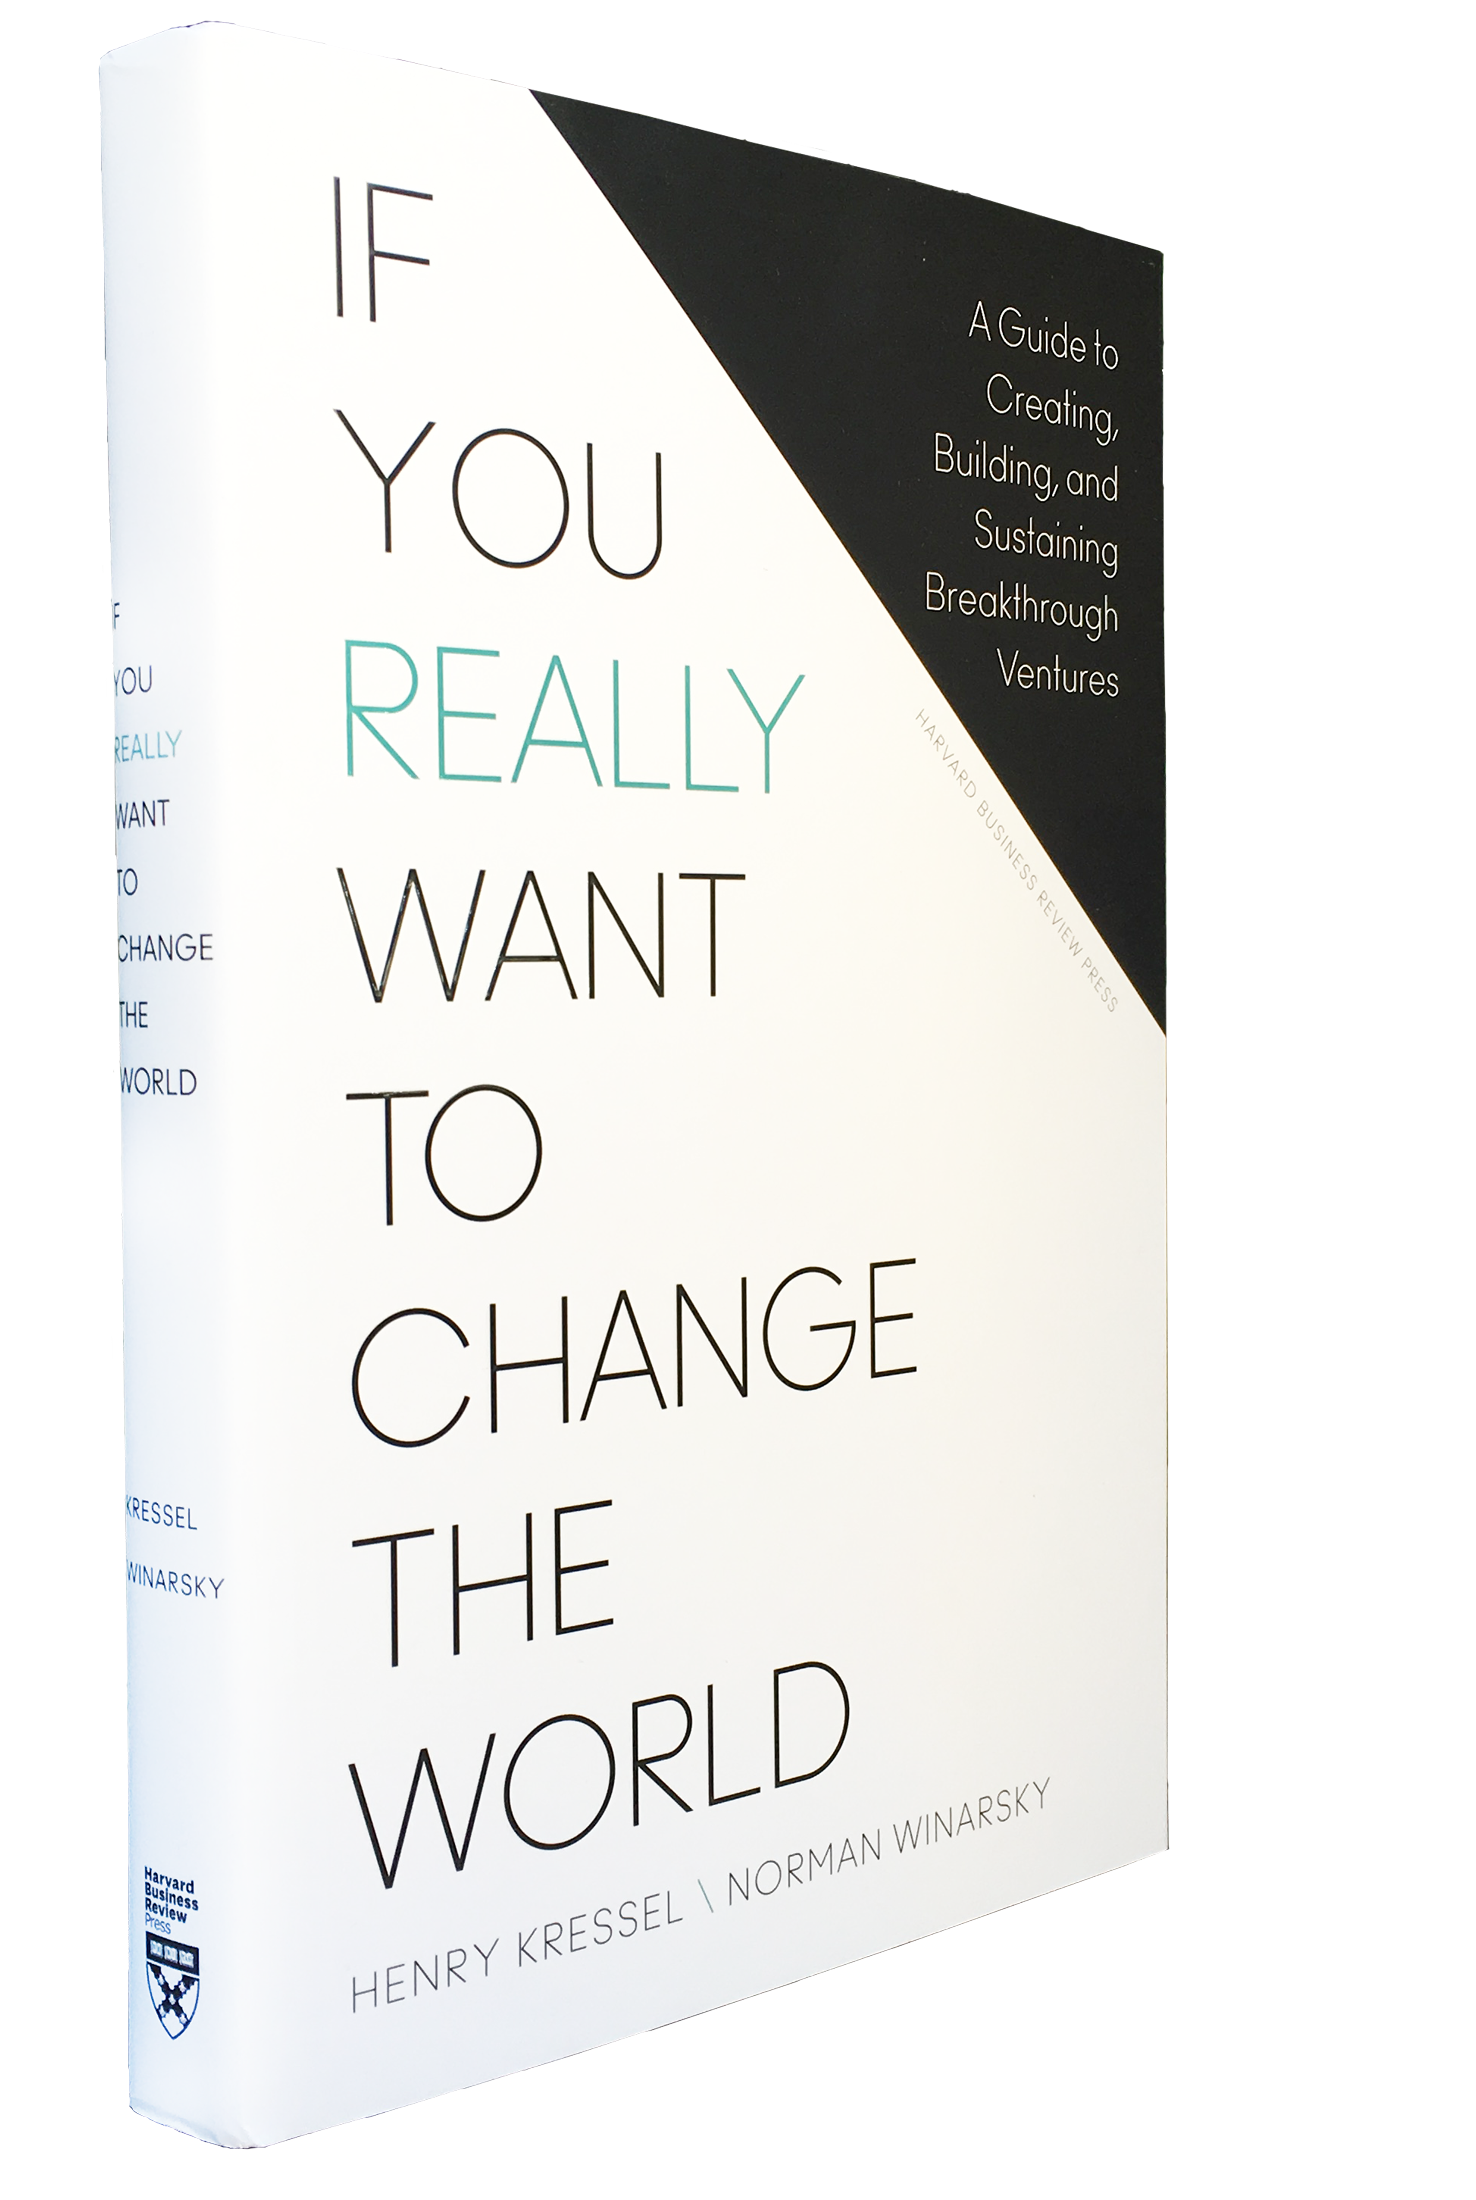 If You Really Want to Change the World book cover